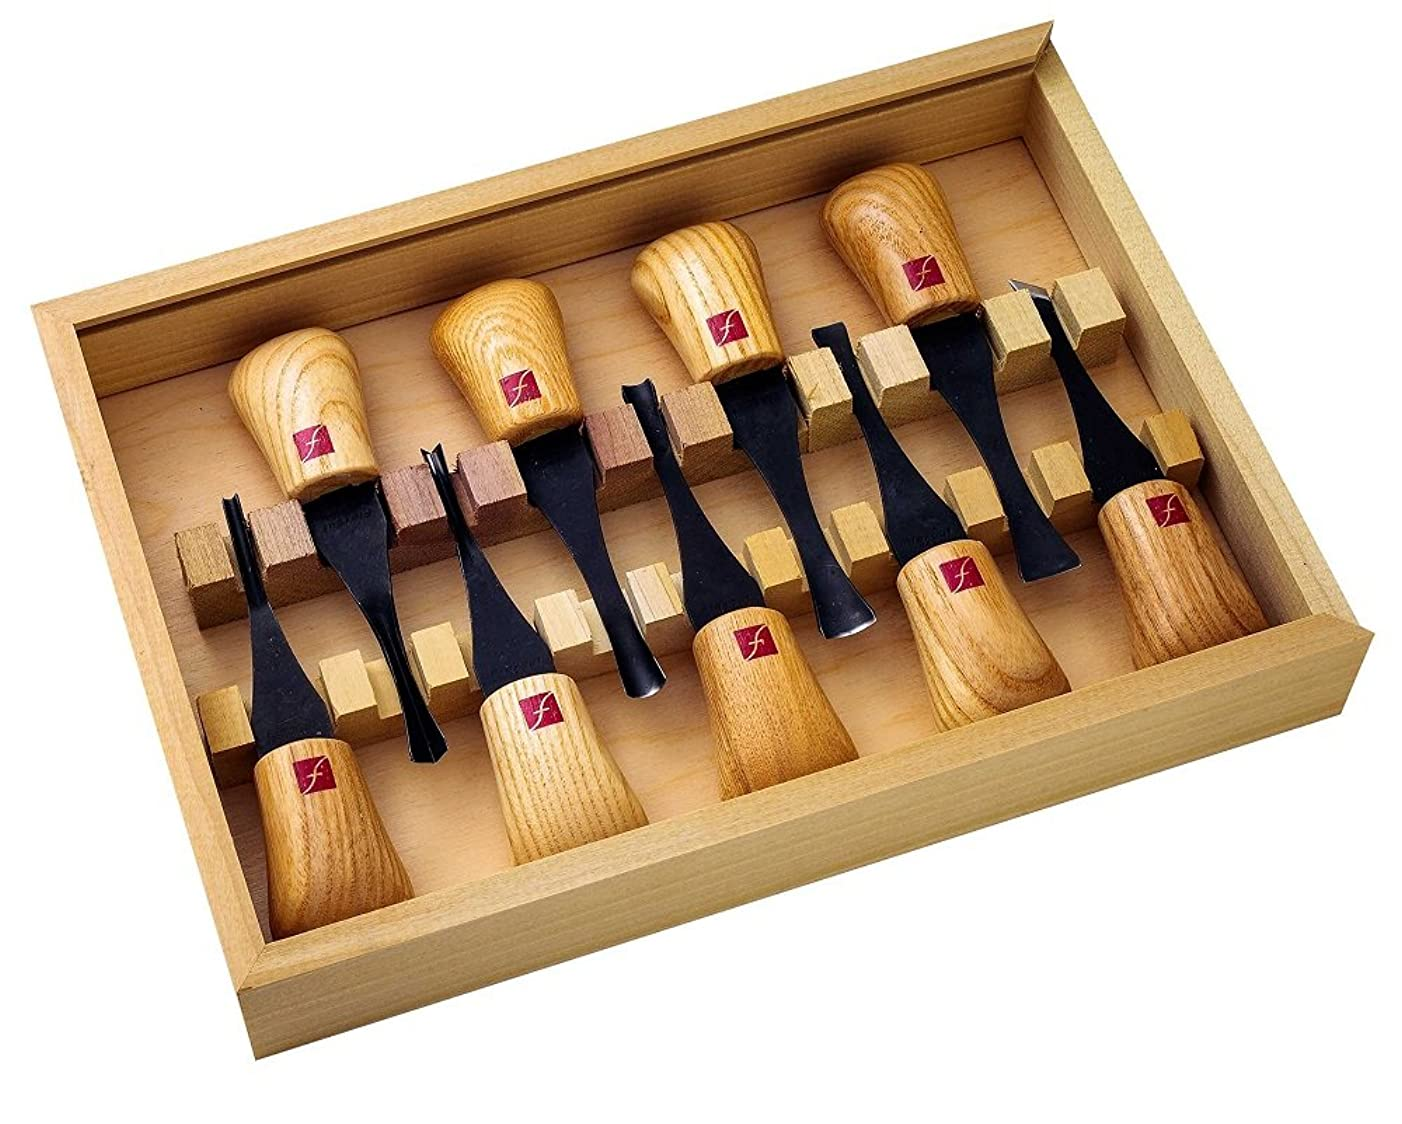 Flexcut Carving Tools, Deluxe Palm Gouges, Ash Hardwood Handles and Carbon Steel Blades, Set of 9 (FR405)